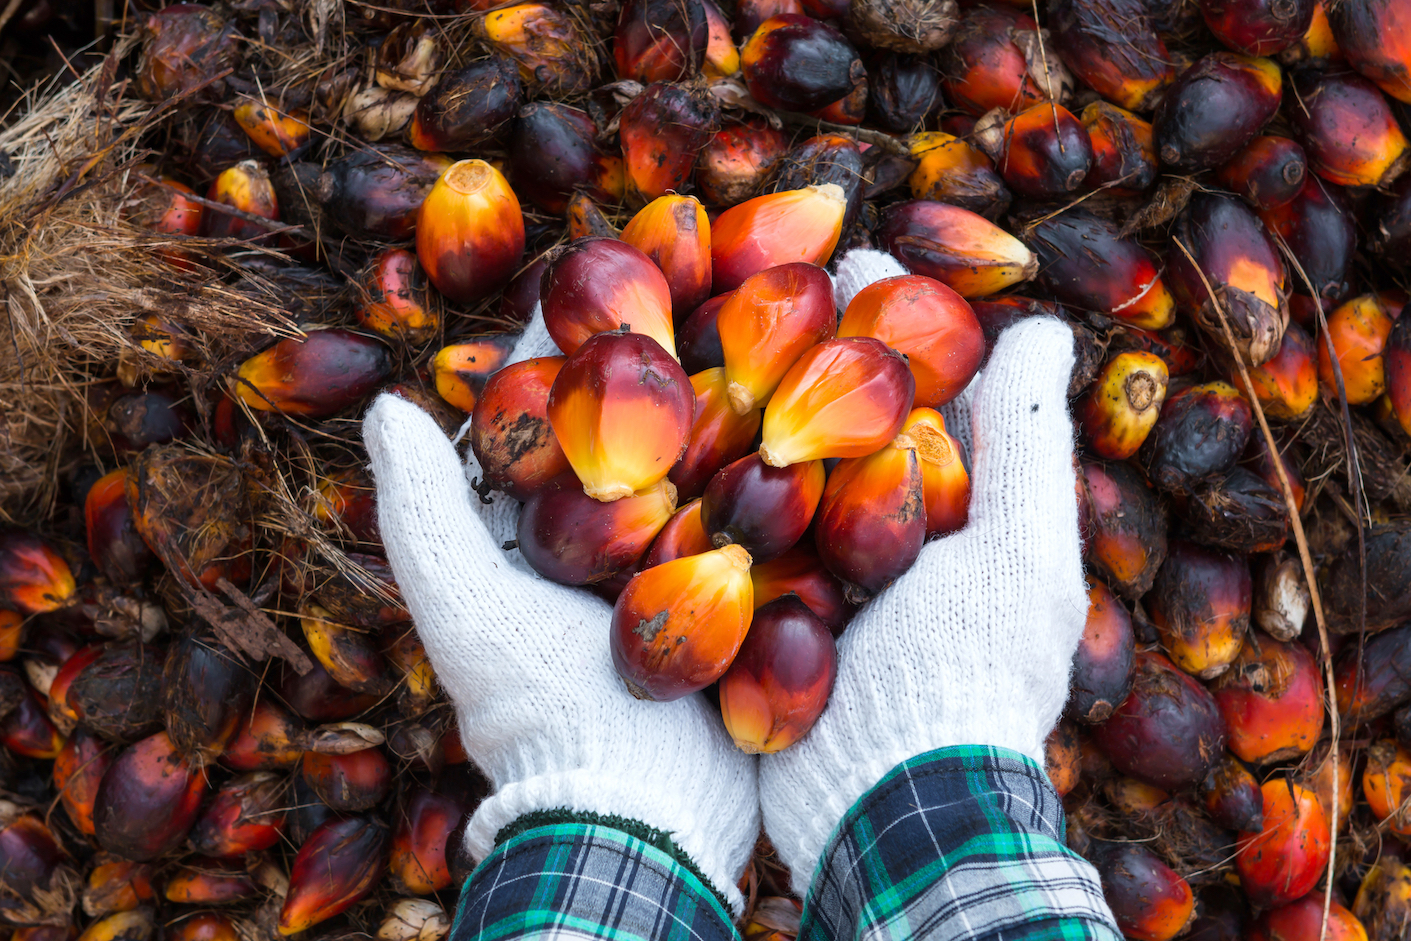 Can you think of any product you give less thought to than palm oil? And yet it's an ingredient in about 50% of the products you find at the supermarket.